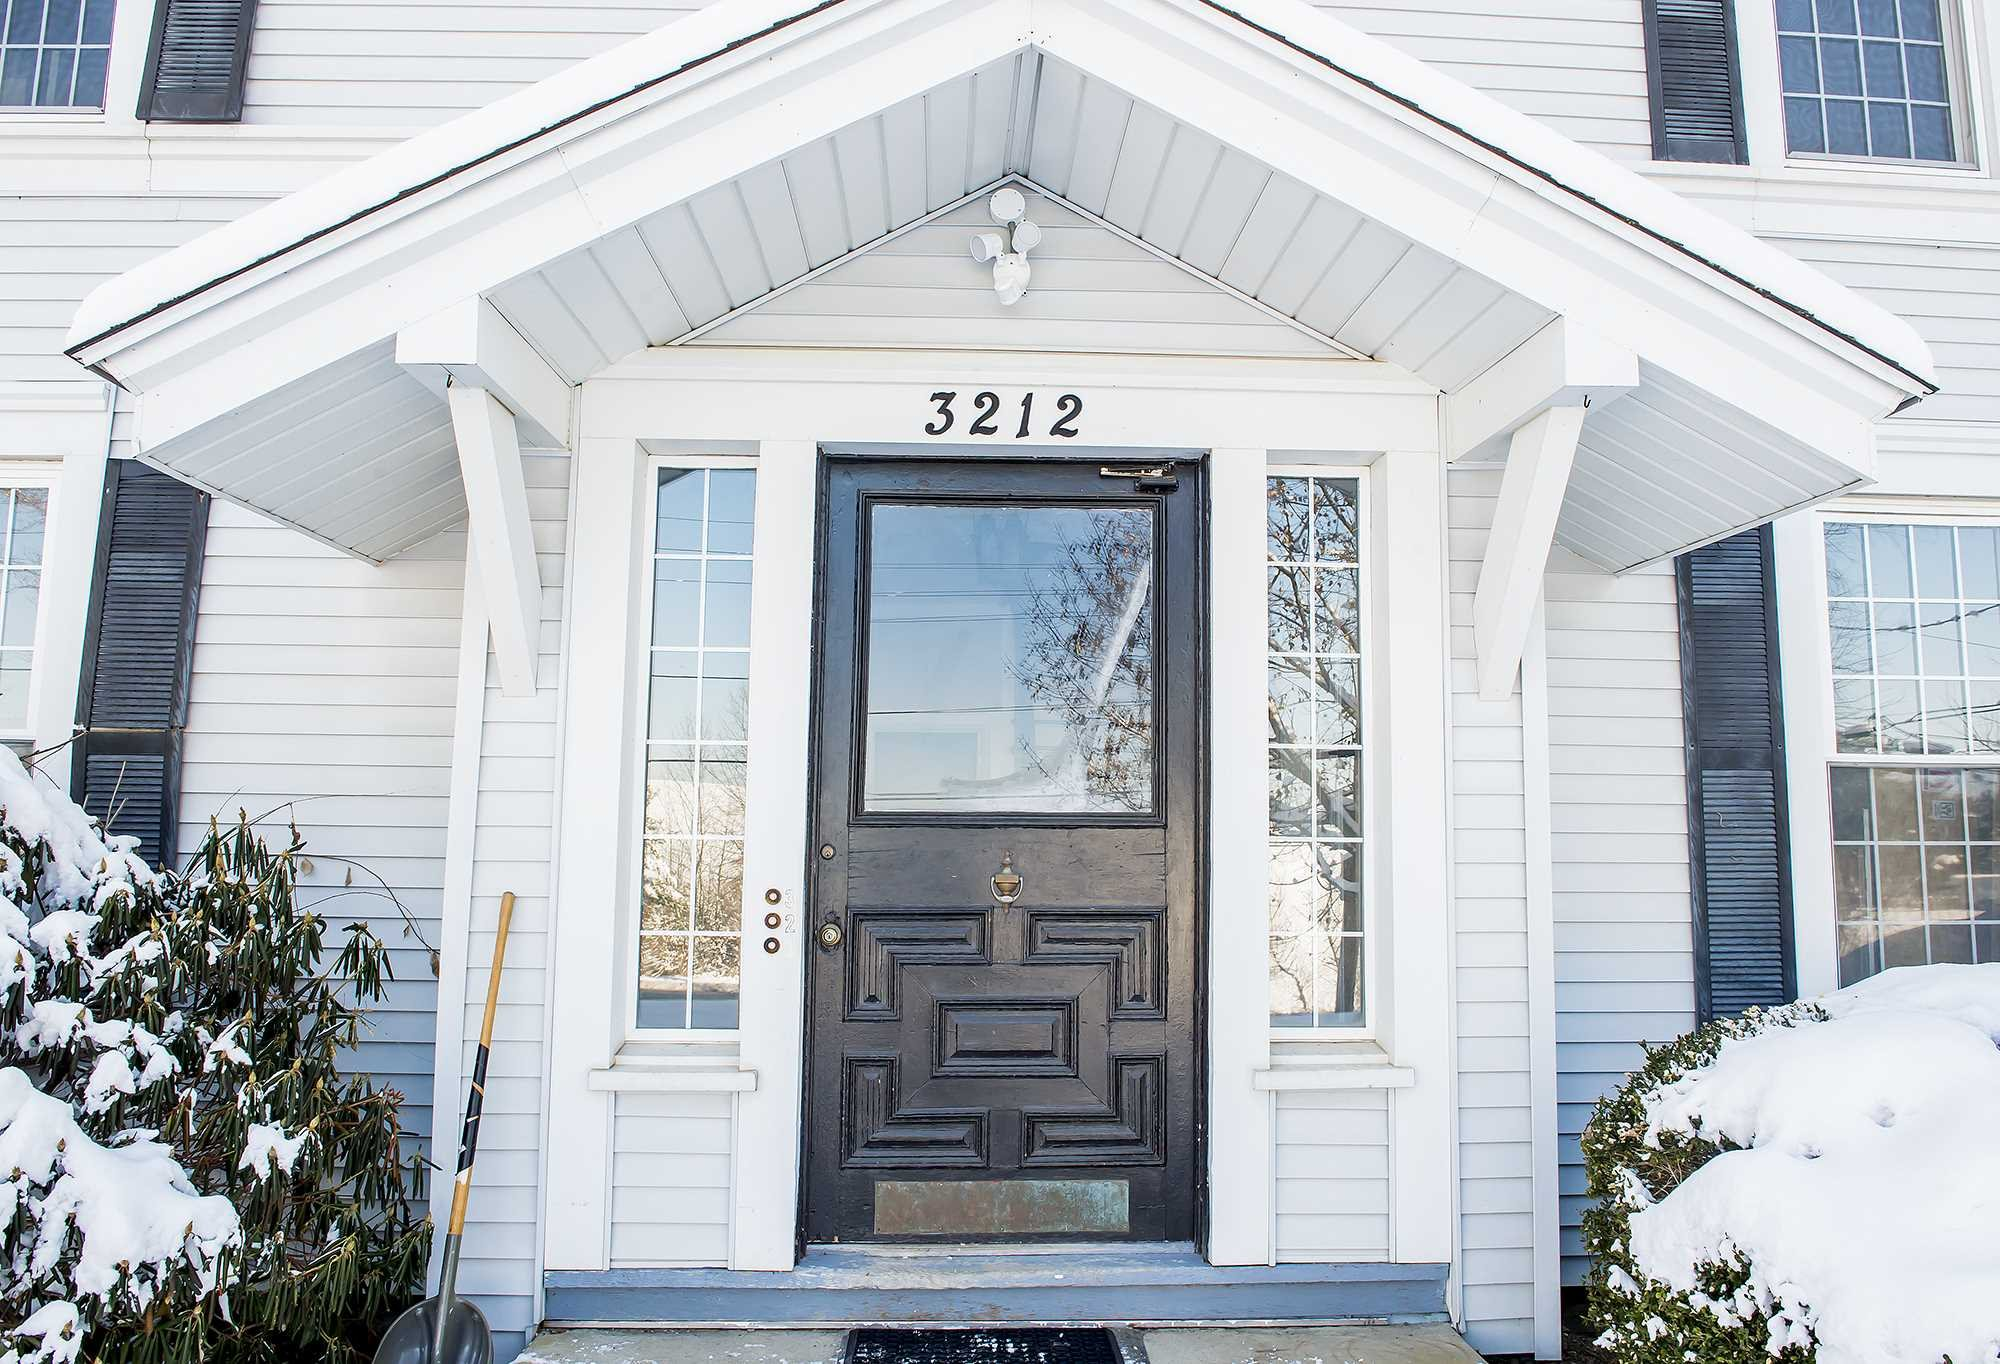 Additional photo for property listing at 3212 FRANKLIN AVENUE 3212 FRANKLIN AVENUE Millbrook, New York 12545 United States